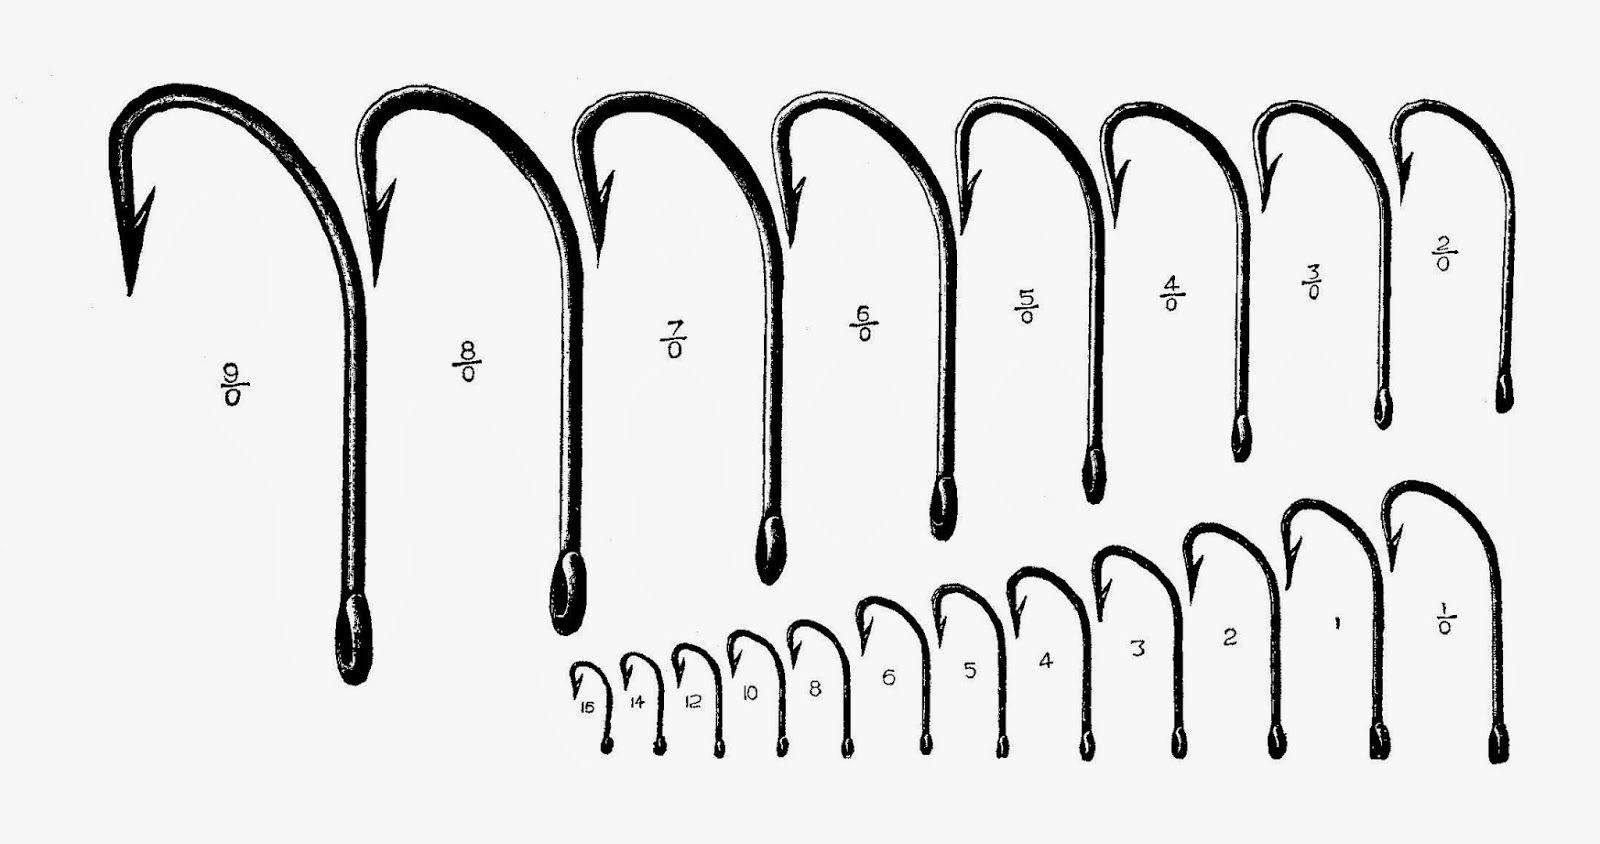 photo regarding Fly Fishing Hook Size Chart Printable identified as fish hooks No cost Printable ~ Black White Fish hook, Fly